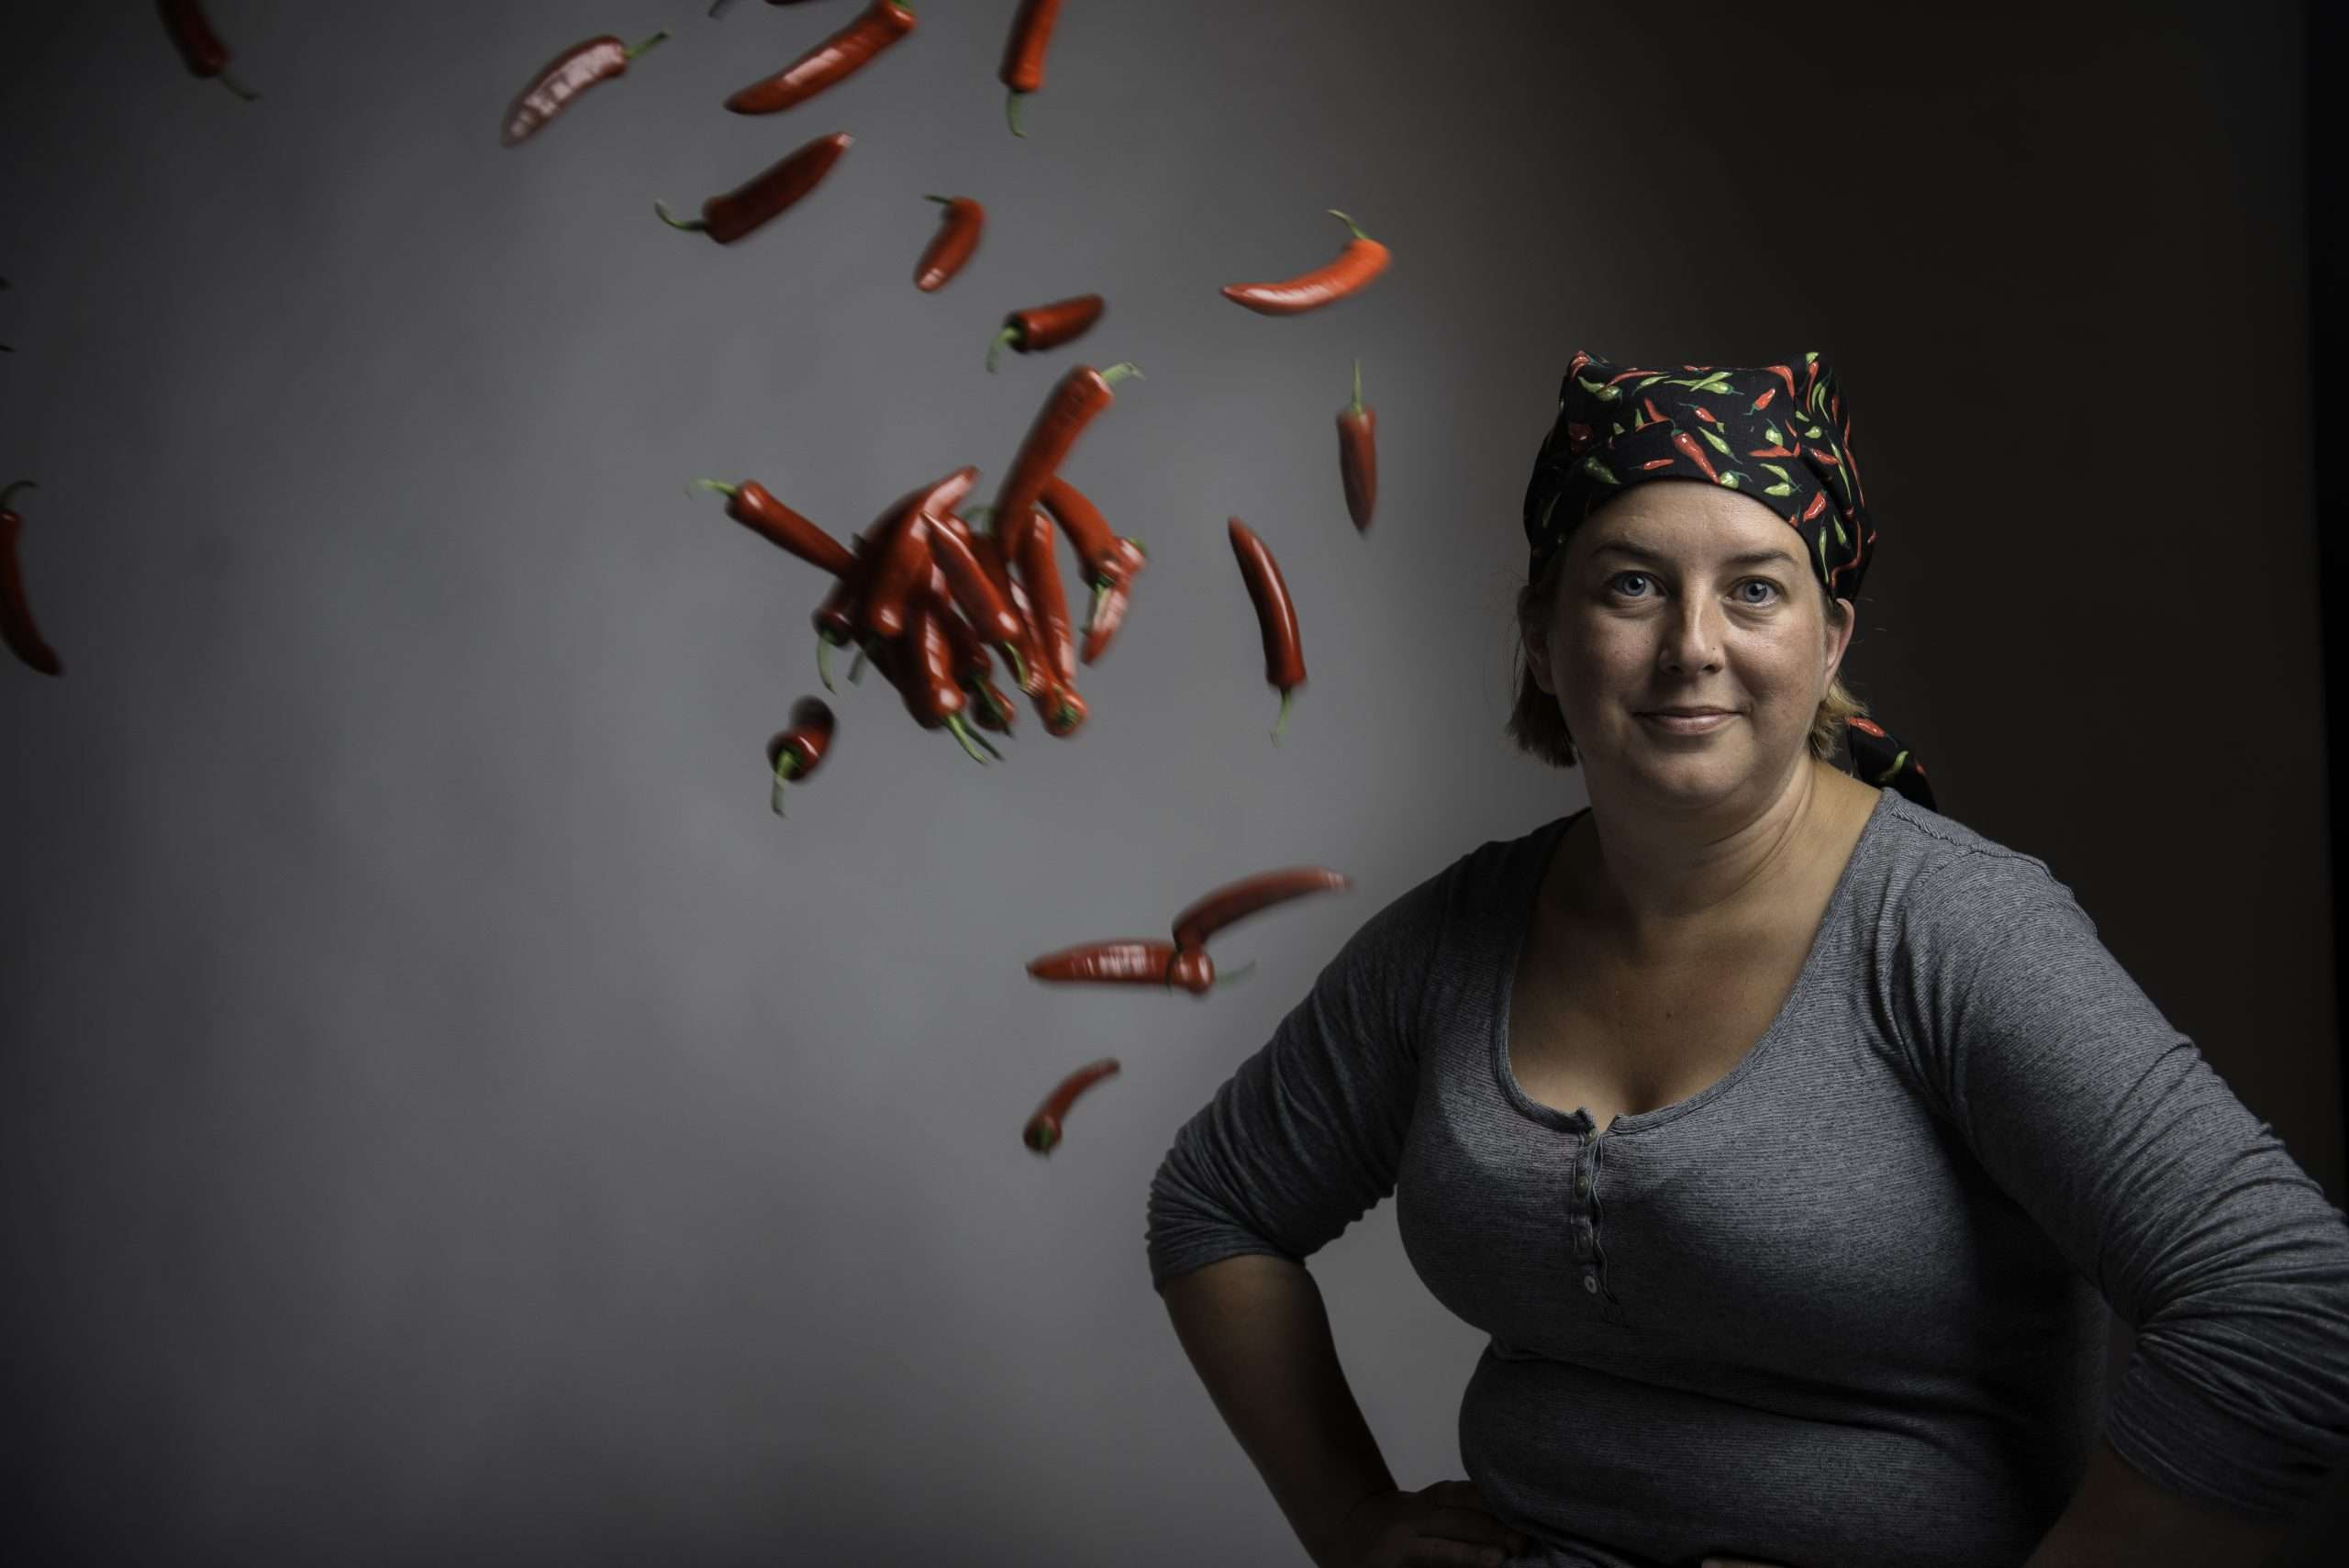 Sheena Horner with chillis